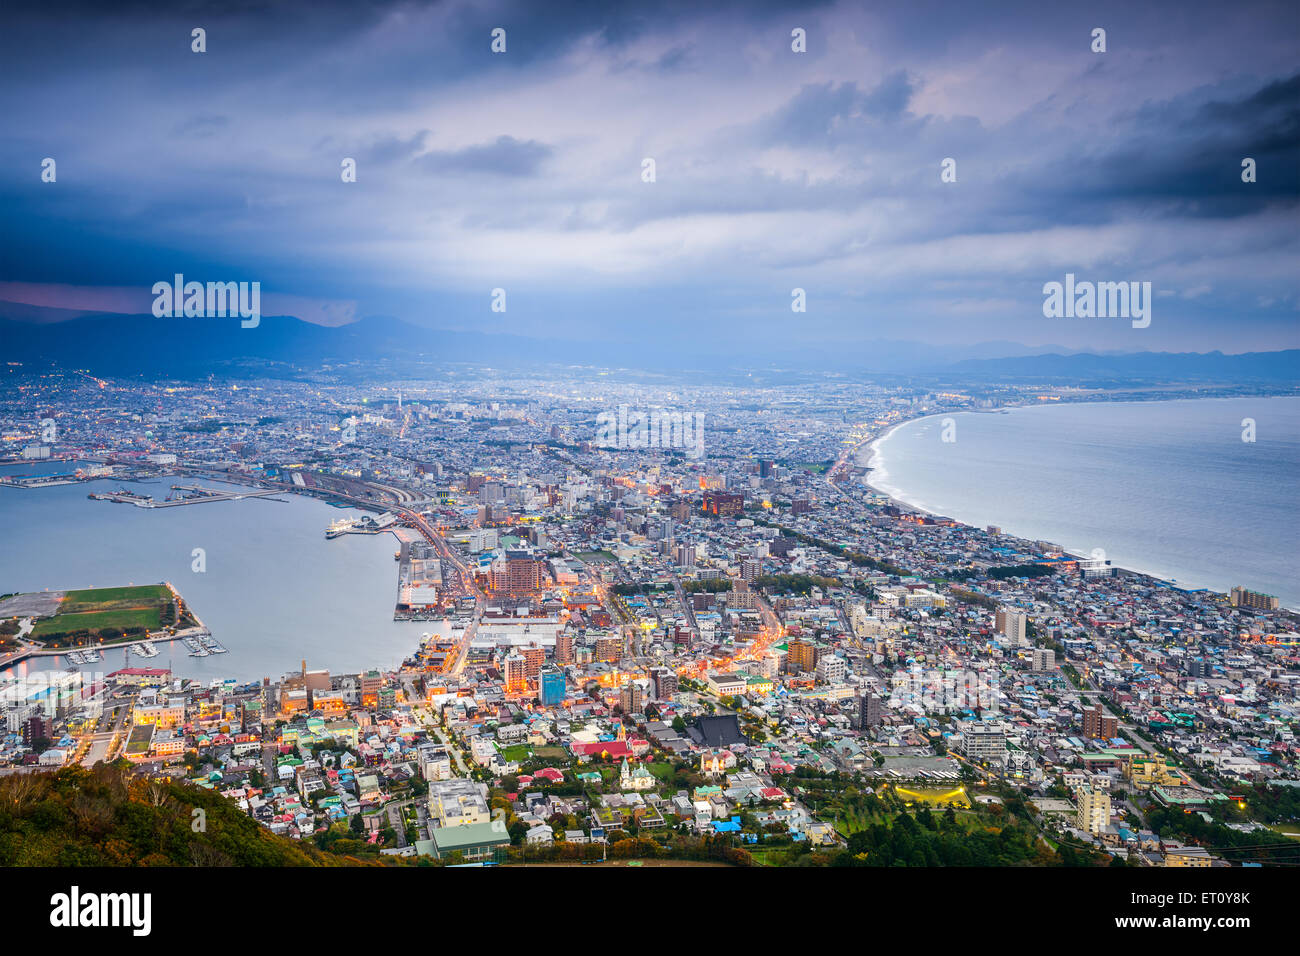 Hakodate, Hokkaido, Japan city skyline from Mt. Hakodate at dusk. - Stock Image